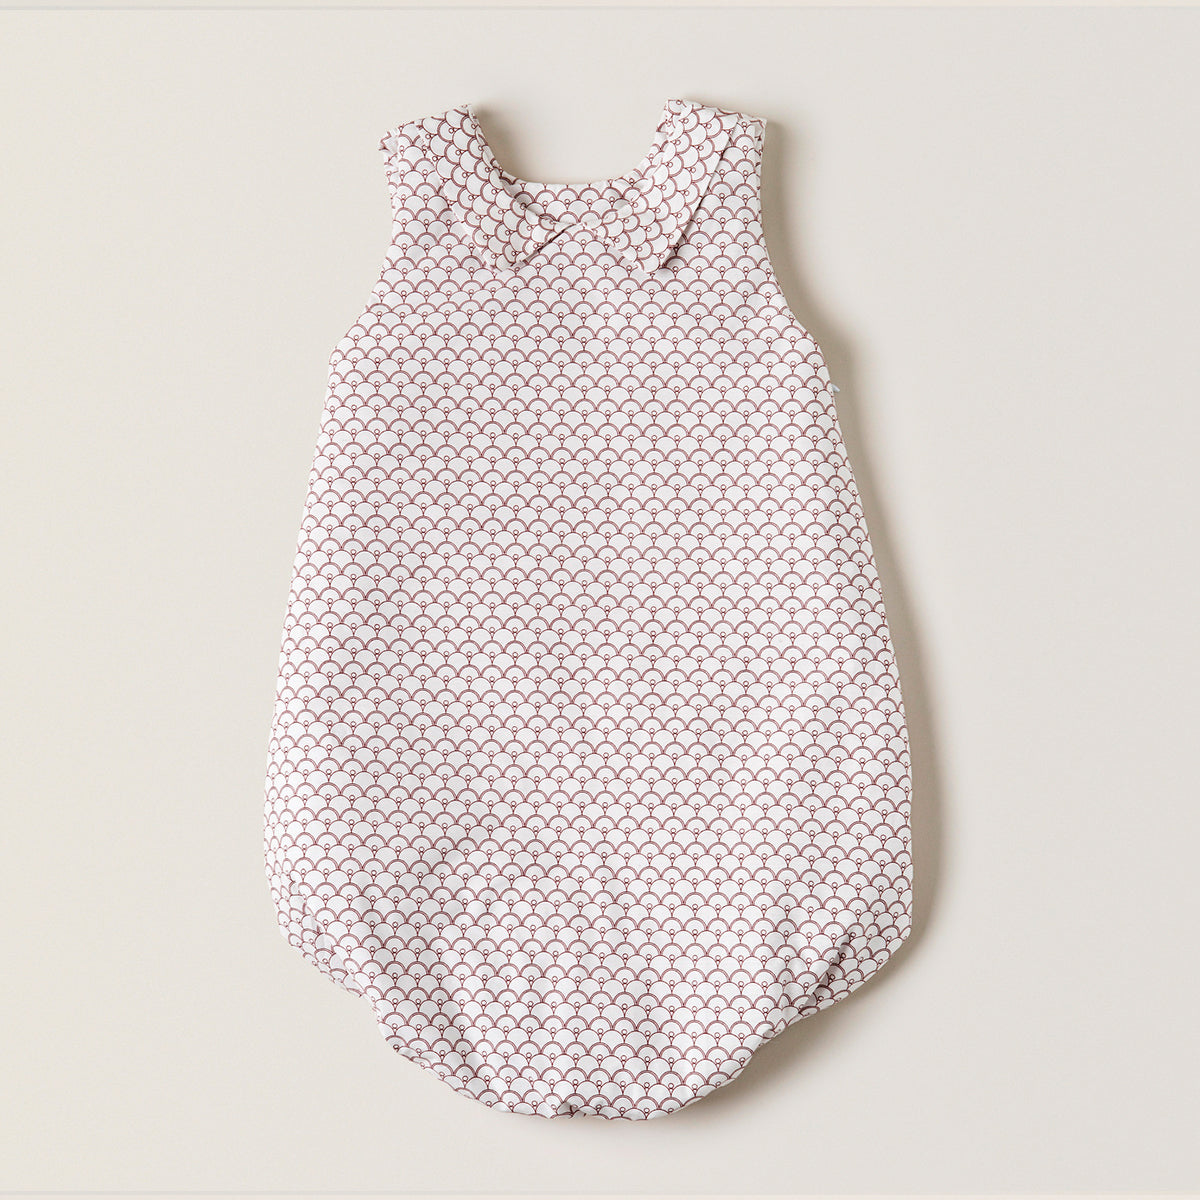 Gray Baby Sleepbag